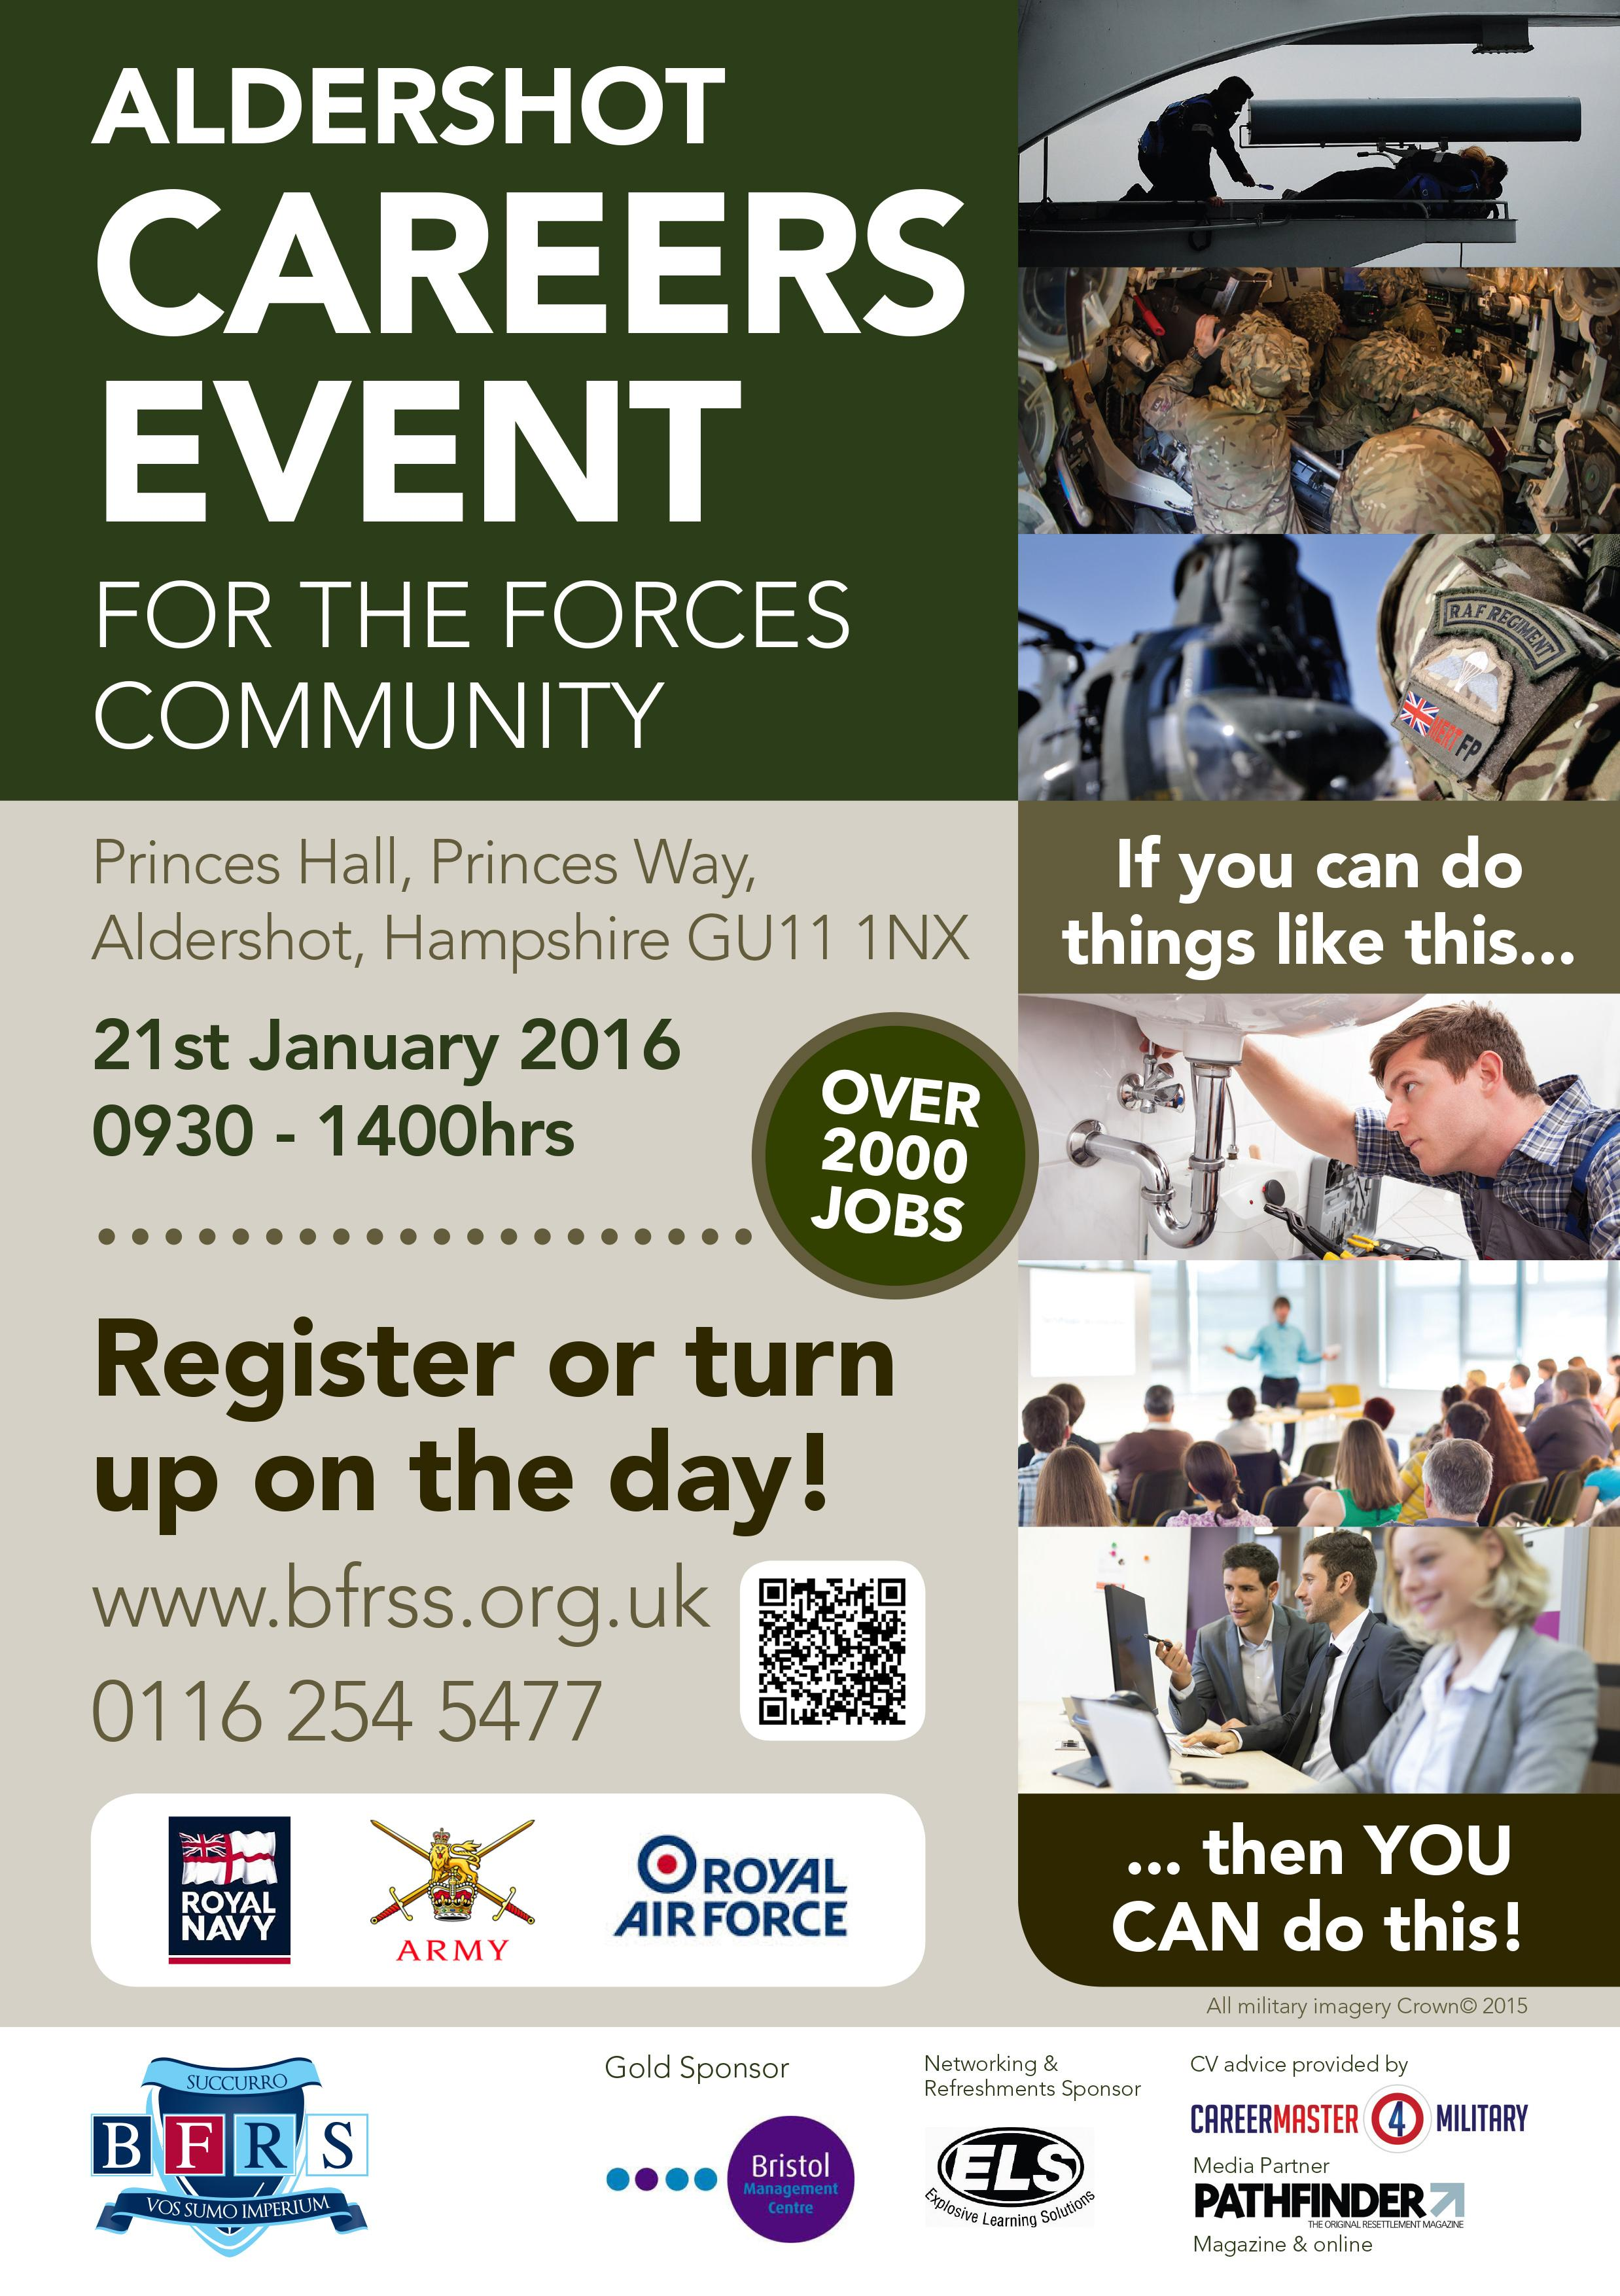 Aldershot Careers Event for the armed Forces Community